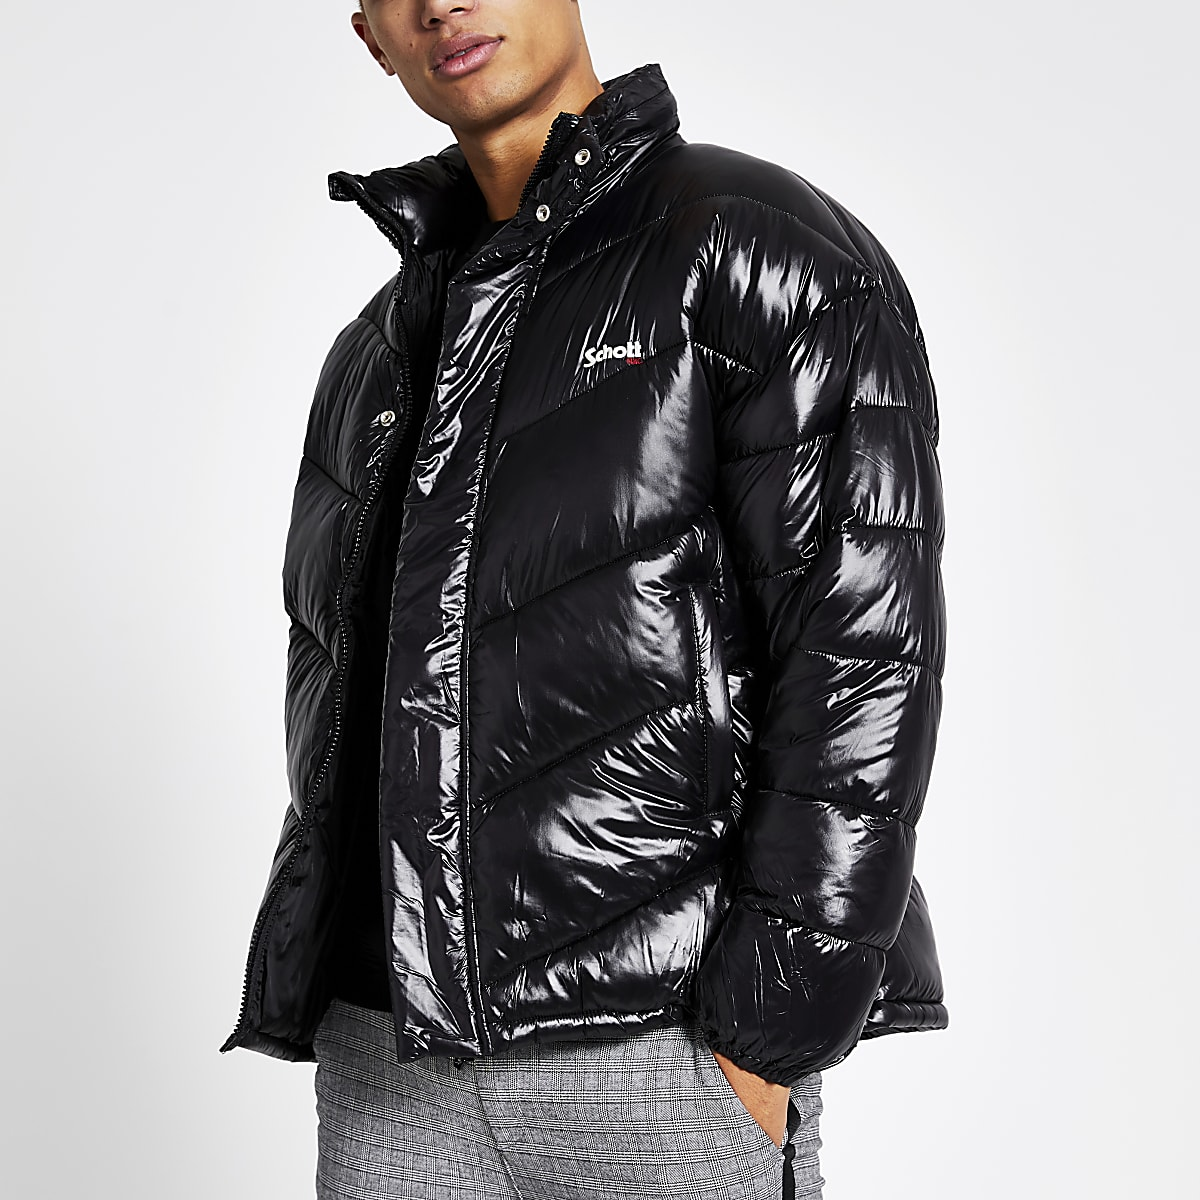 Schott black nylon padded jacket